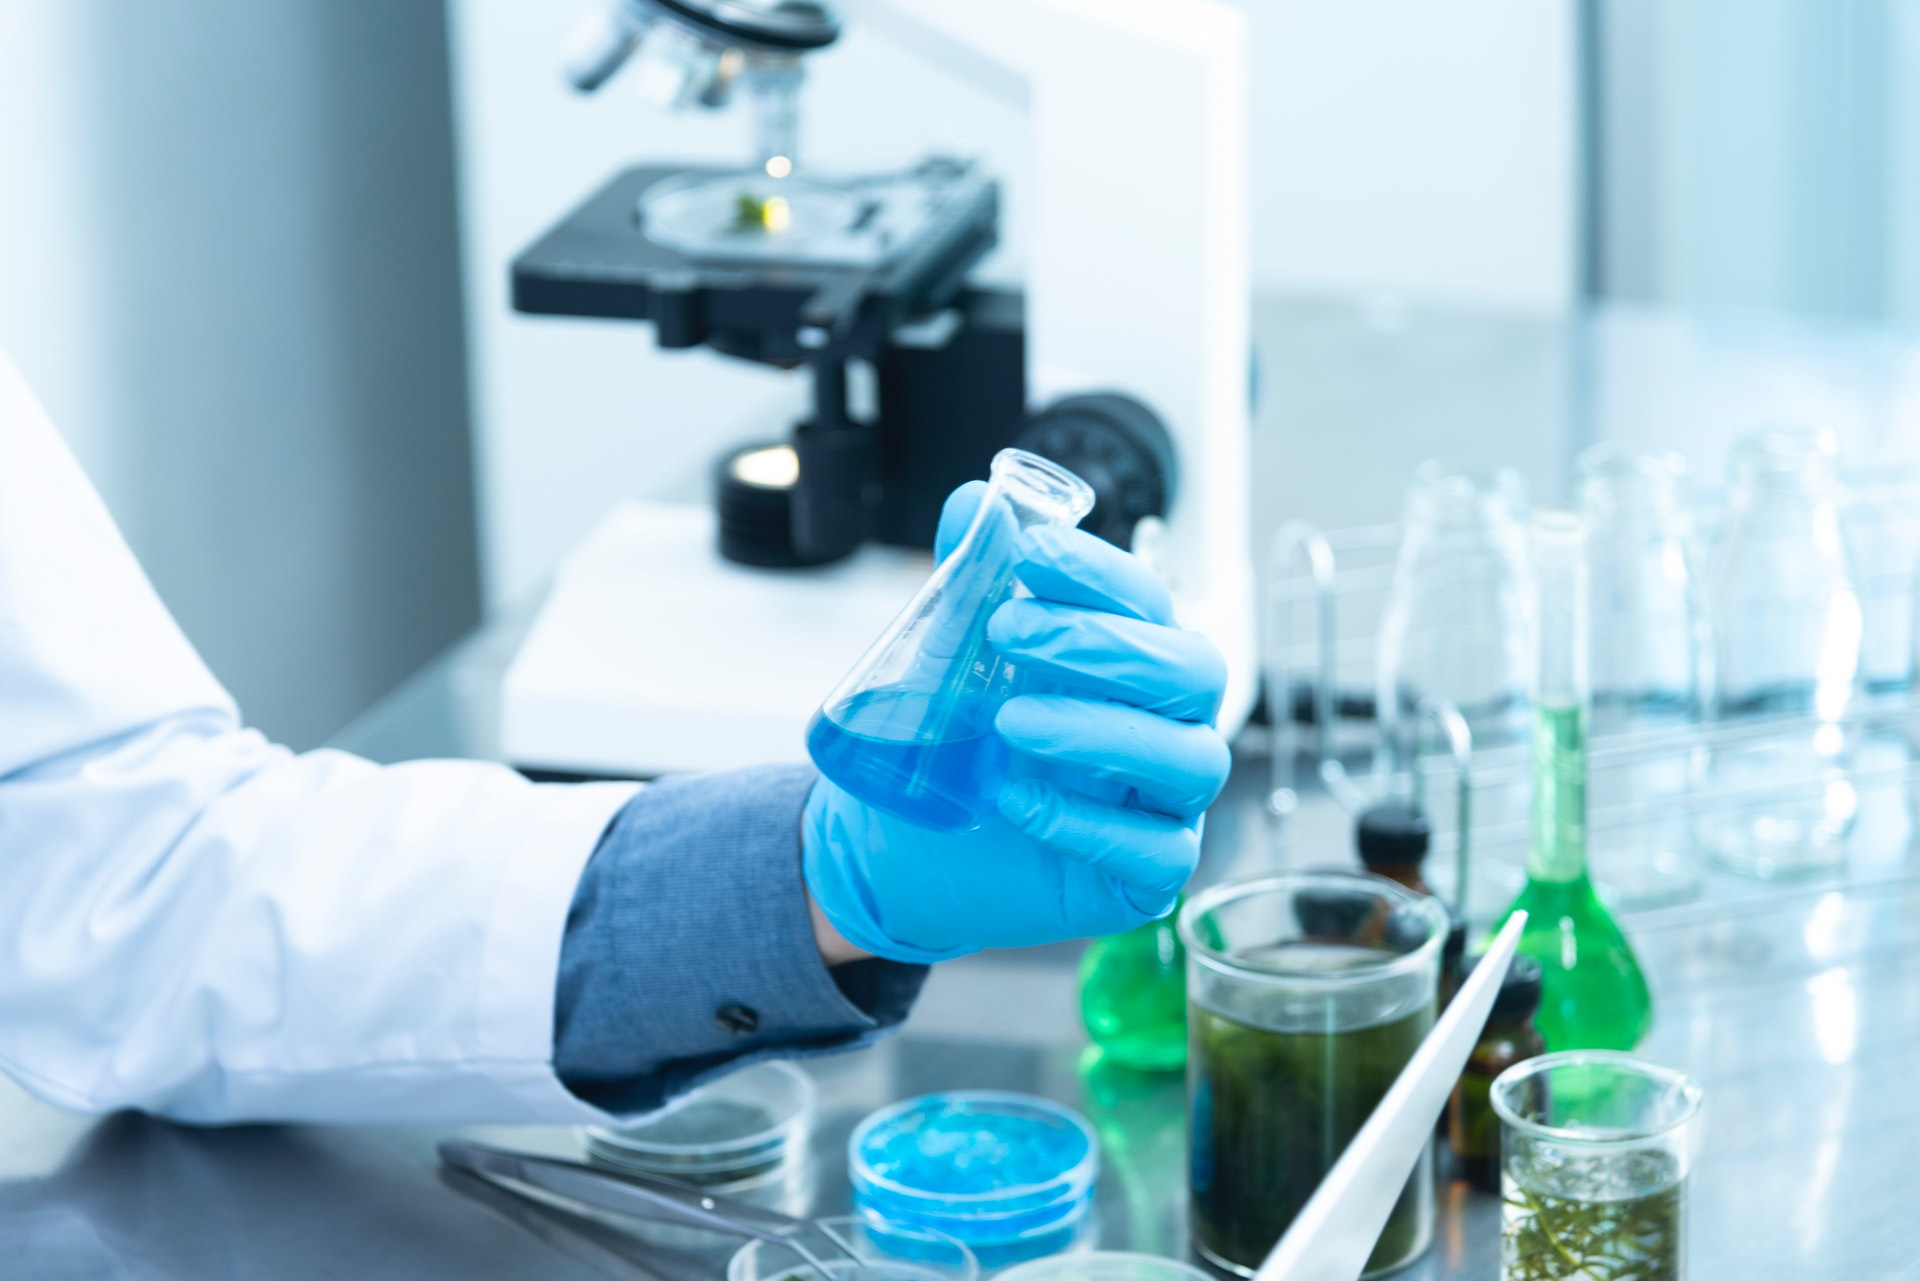 Hoth Therapeutics expands with Novel Alzheimer's Treatment